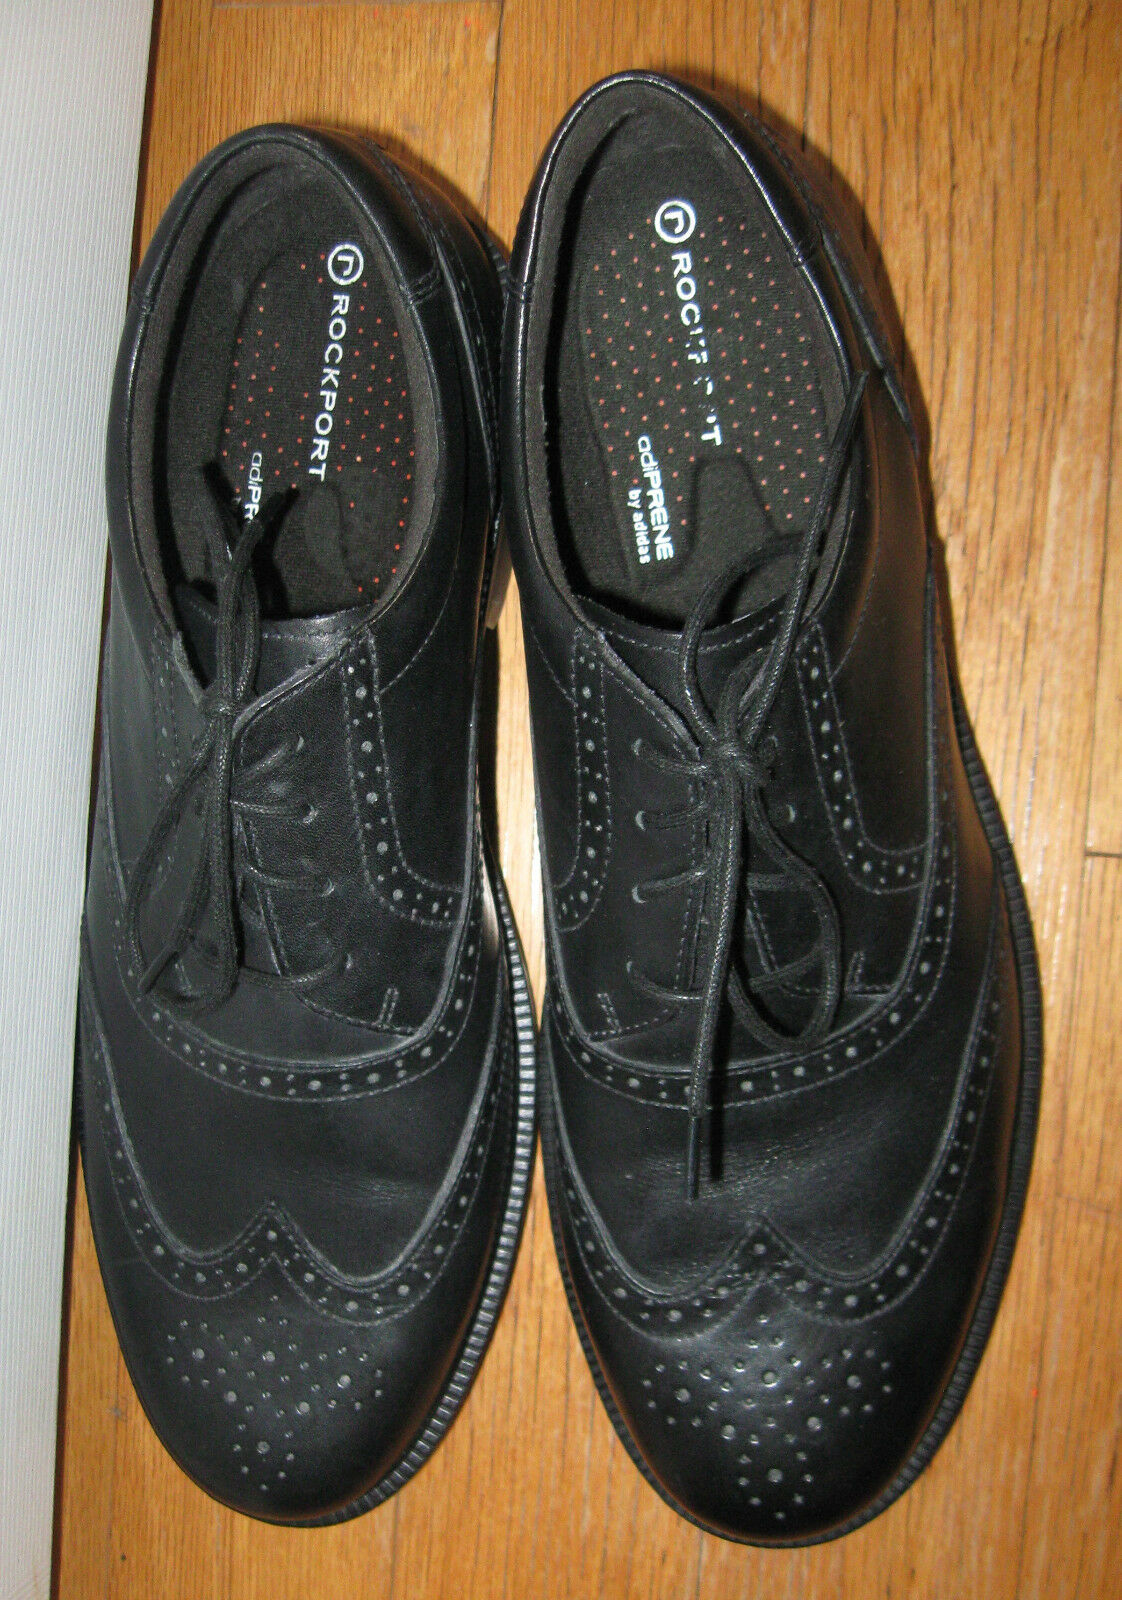 ROCKPORT ALMARTIN OXFORDS adiPRENE MEN'S BLACK LEATHER WINGTIP OXFORDS ALMARTIN SIZE 11 M 2810eb